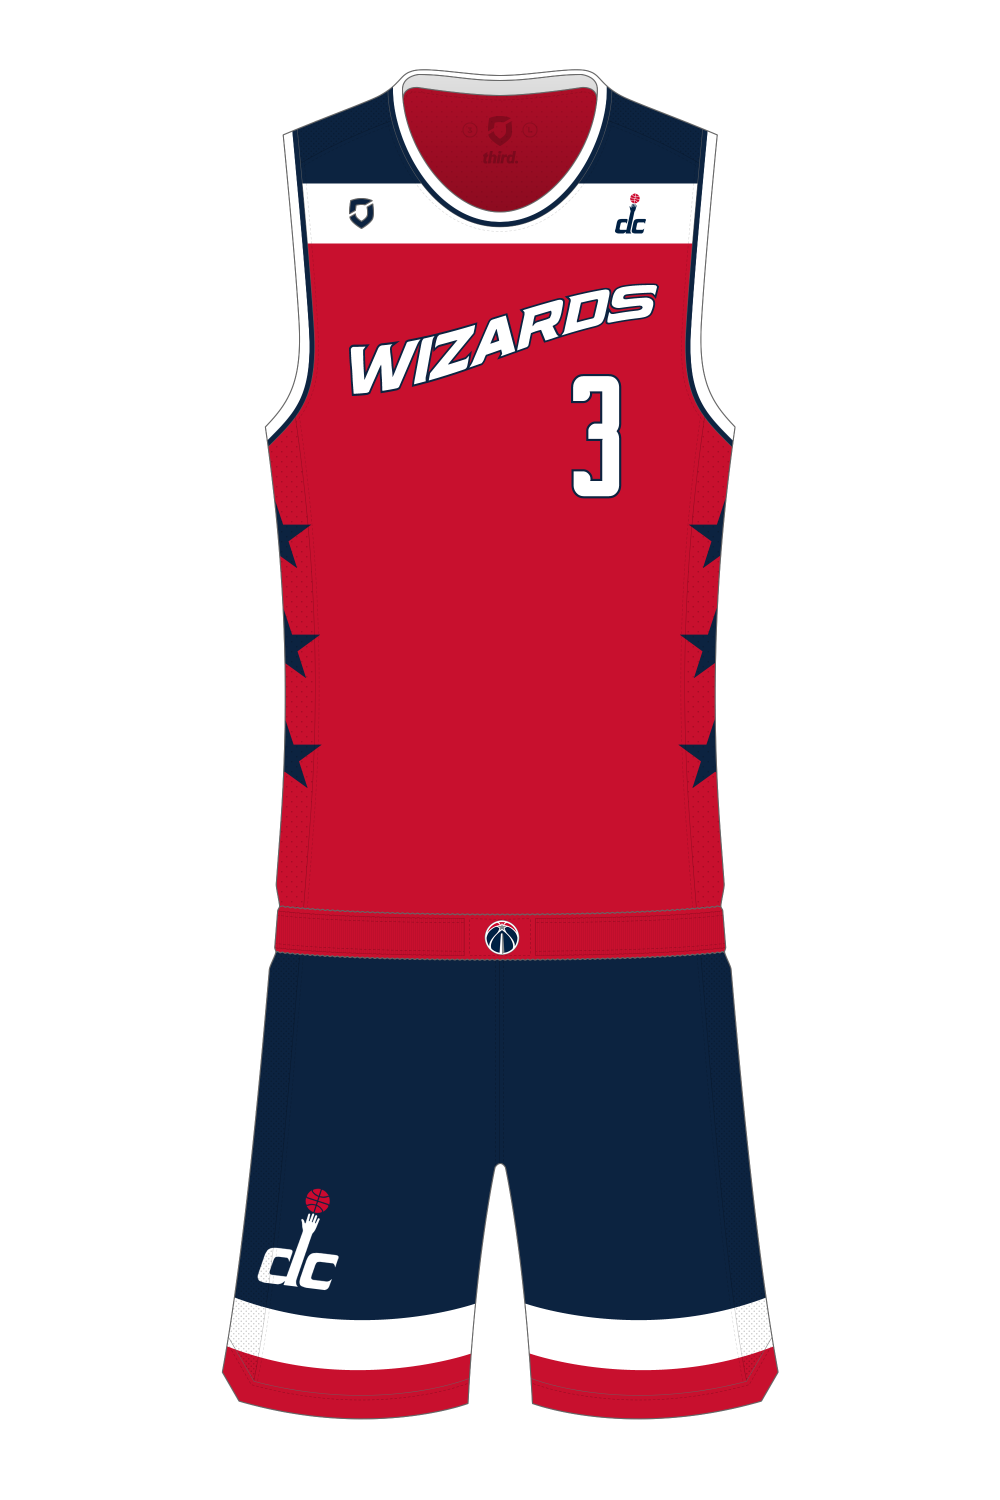 18b15a49f Washington Wizards Alternate — Third Sports Design by Dean ...